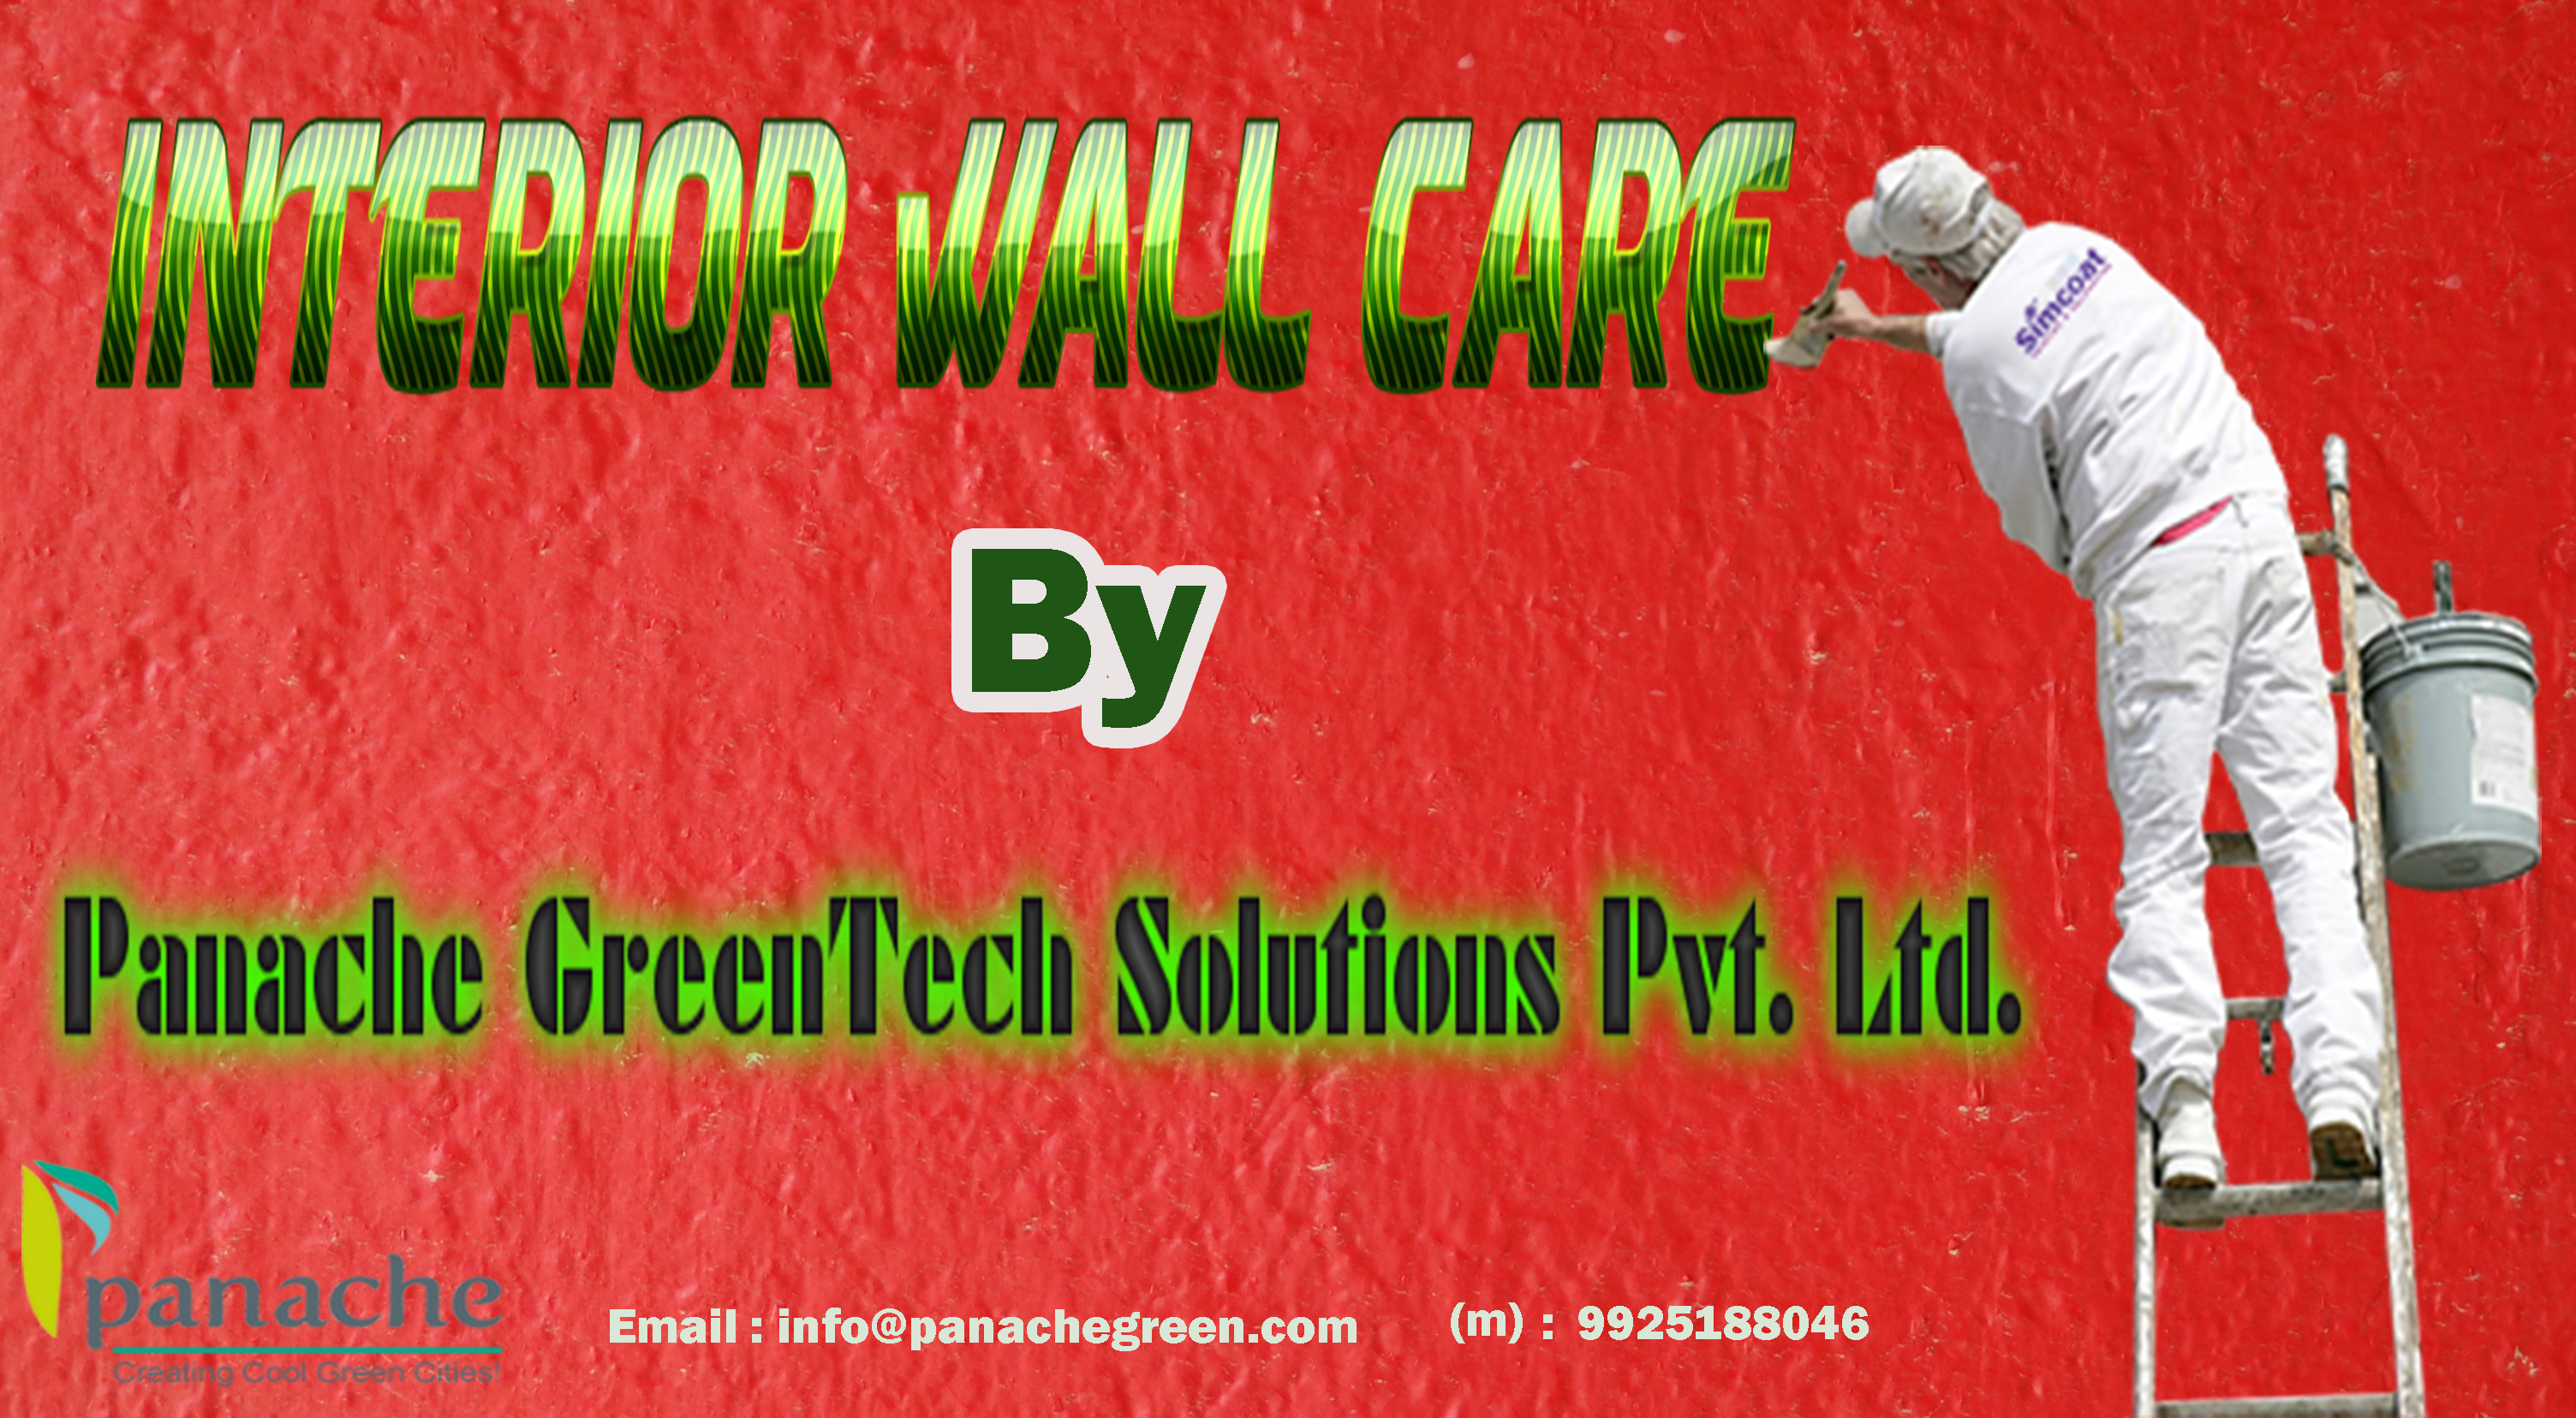 Interor Wall Care Services And Products For Your Home And Office Decorating Offered By Panache Green Call Us At 99251 88046 O Cool Roof Green Tech Roofing